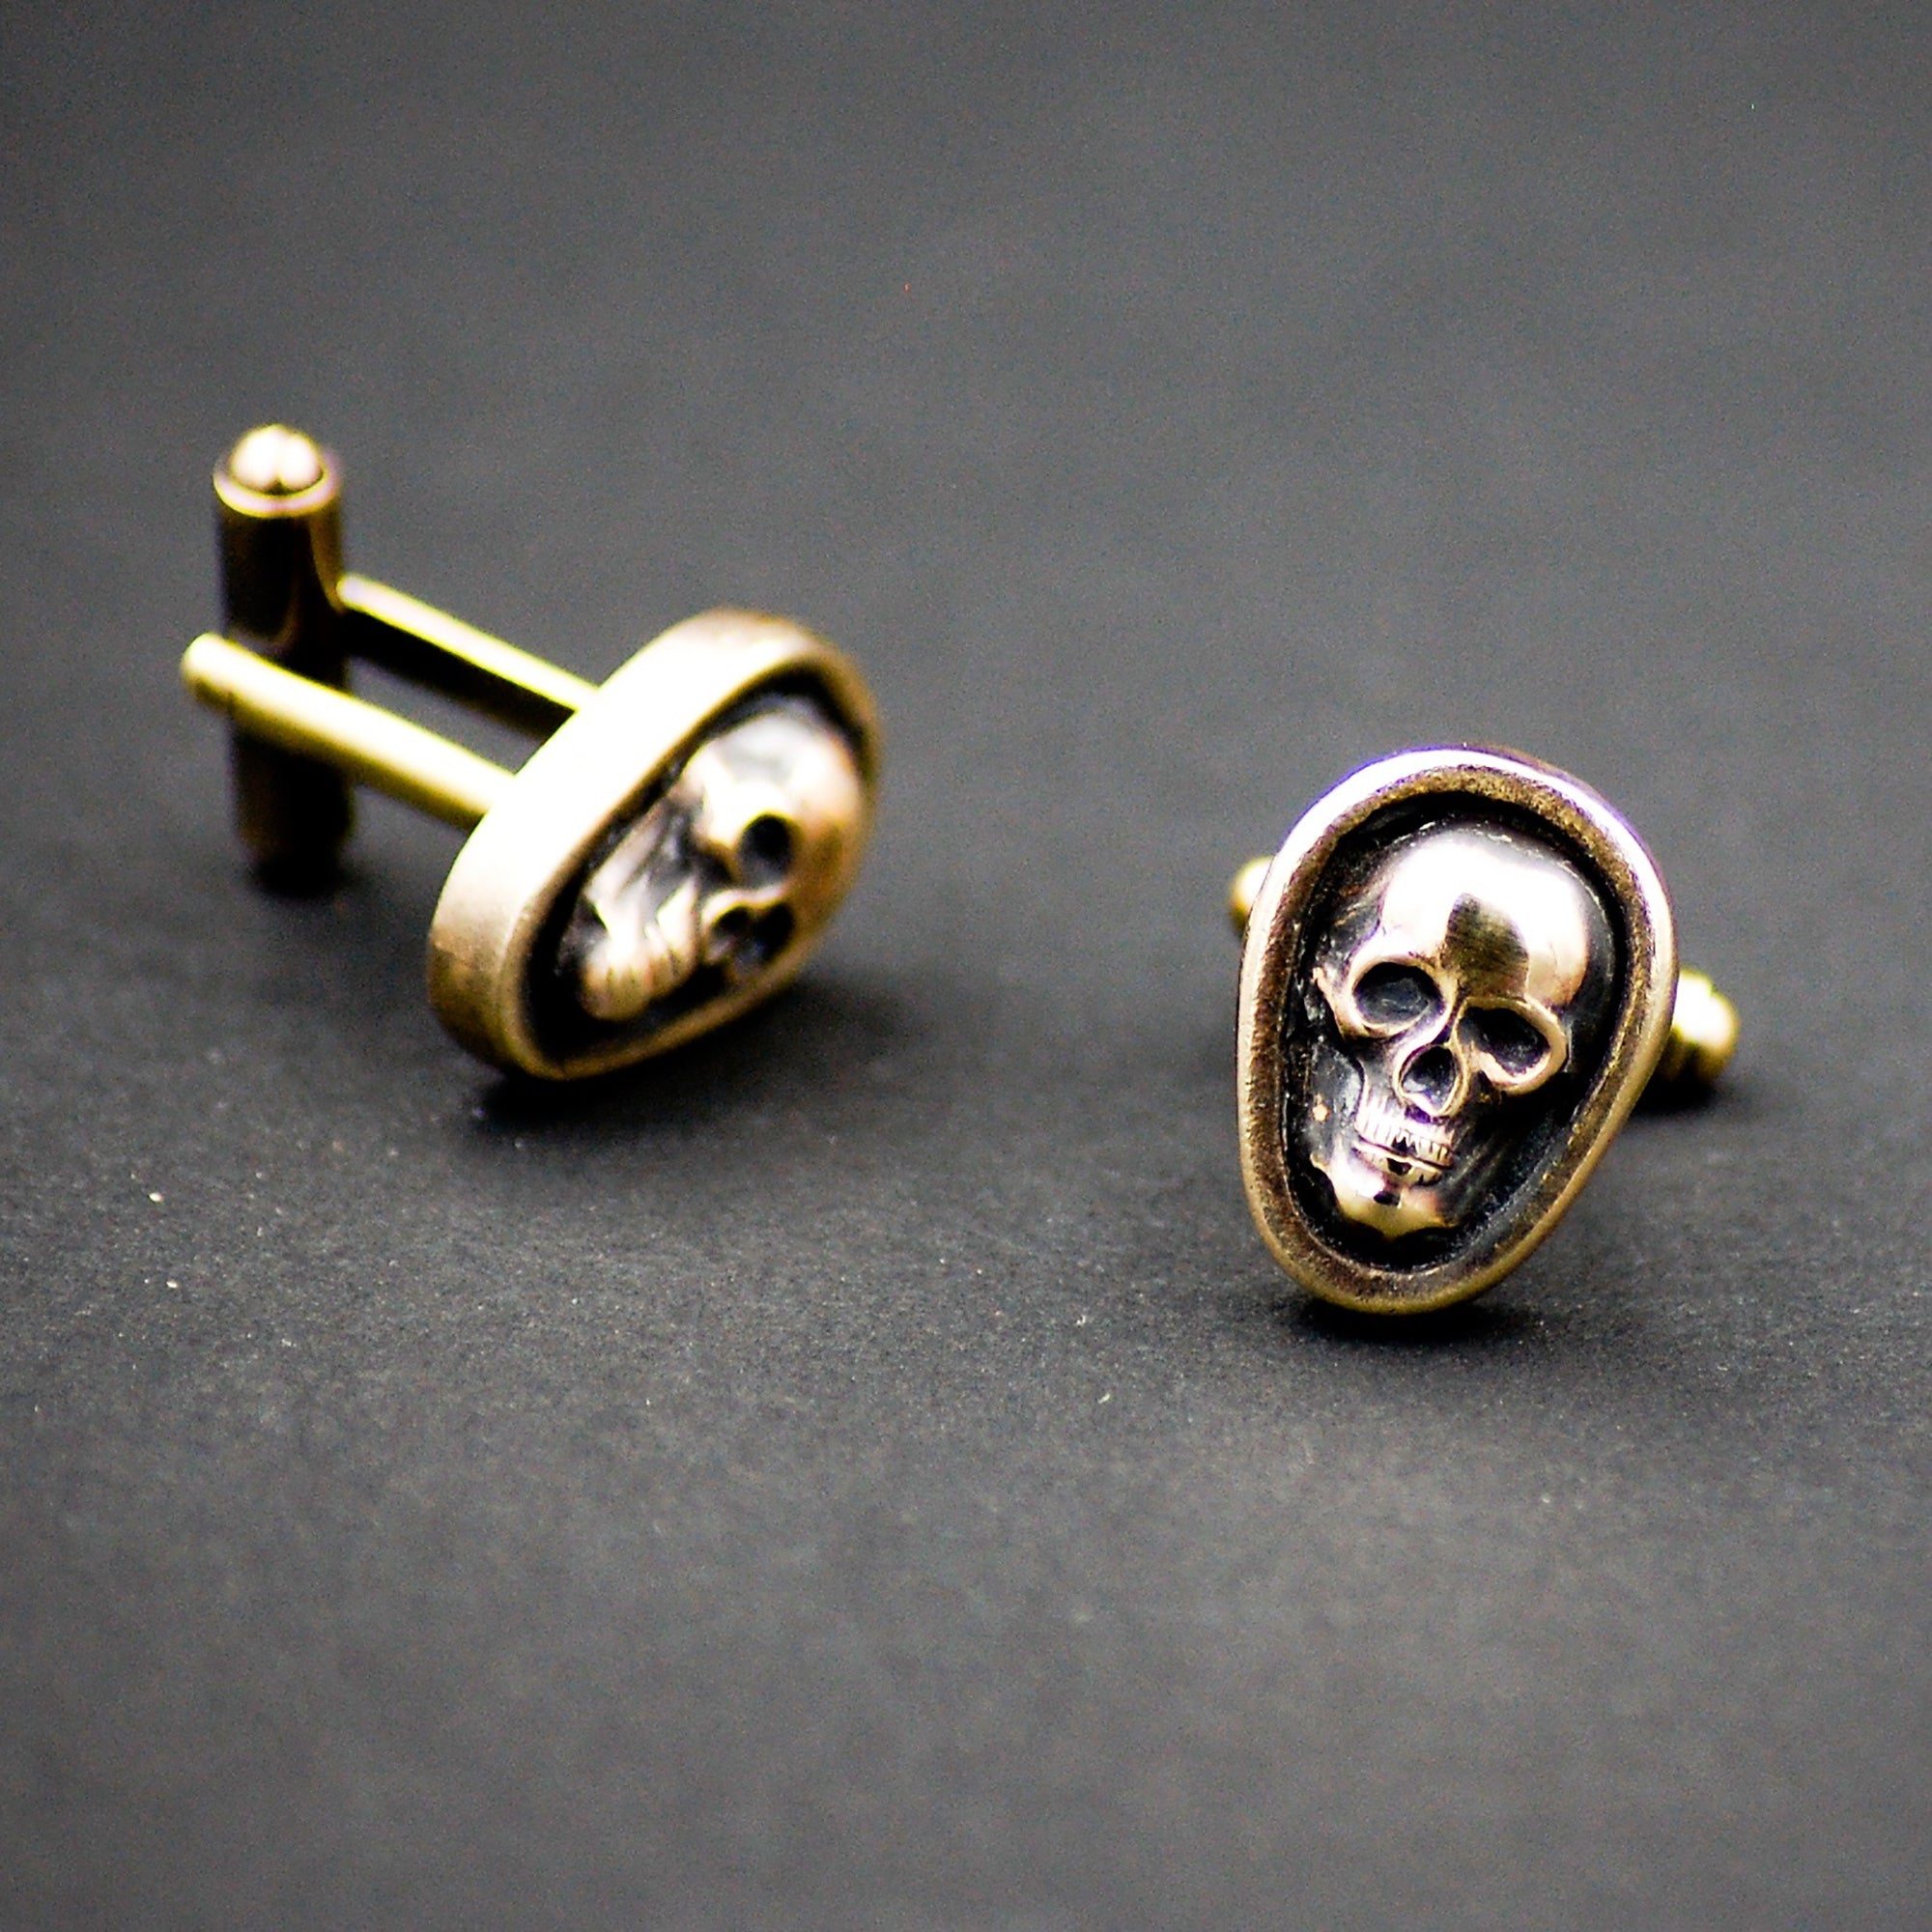 Antiqued Gold Skull Cufflinks -- Unisex Cuff Links for Groom or Father of the Bride or Groomsmen